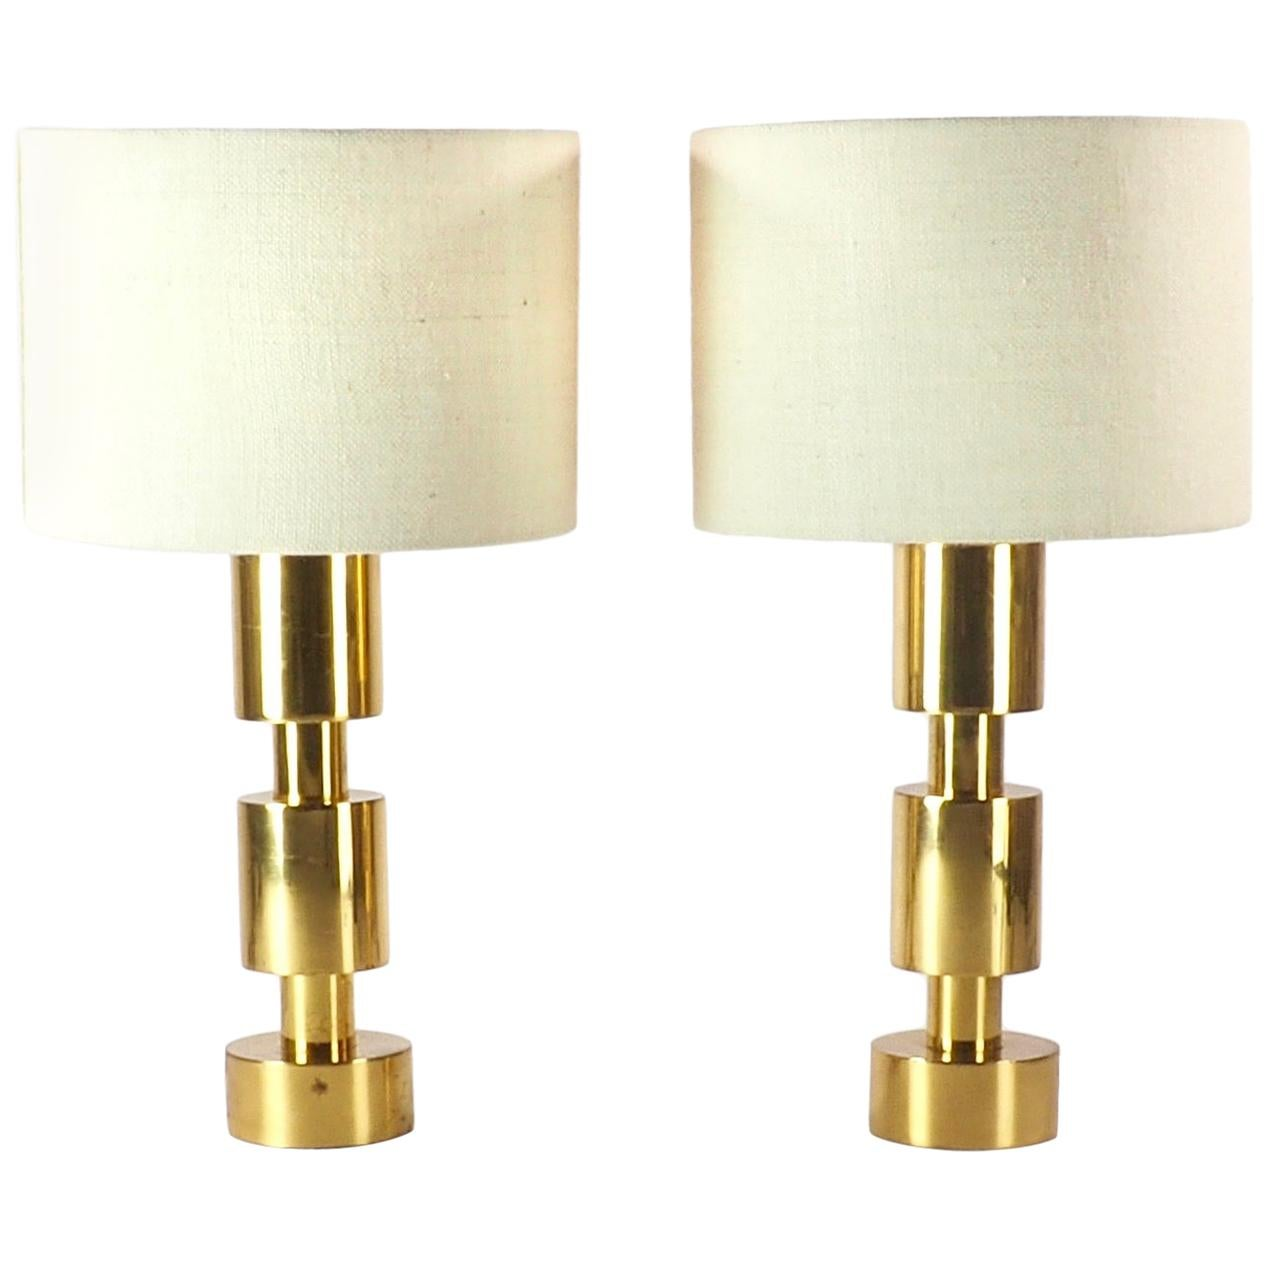 Two Italian Modernist Gilt Cylindrical Metal Table Lamps